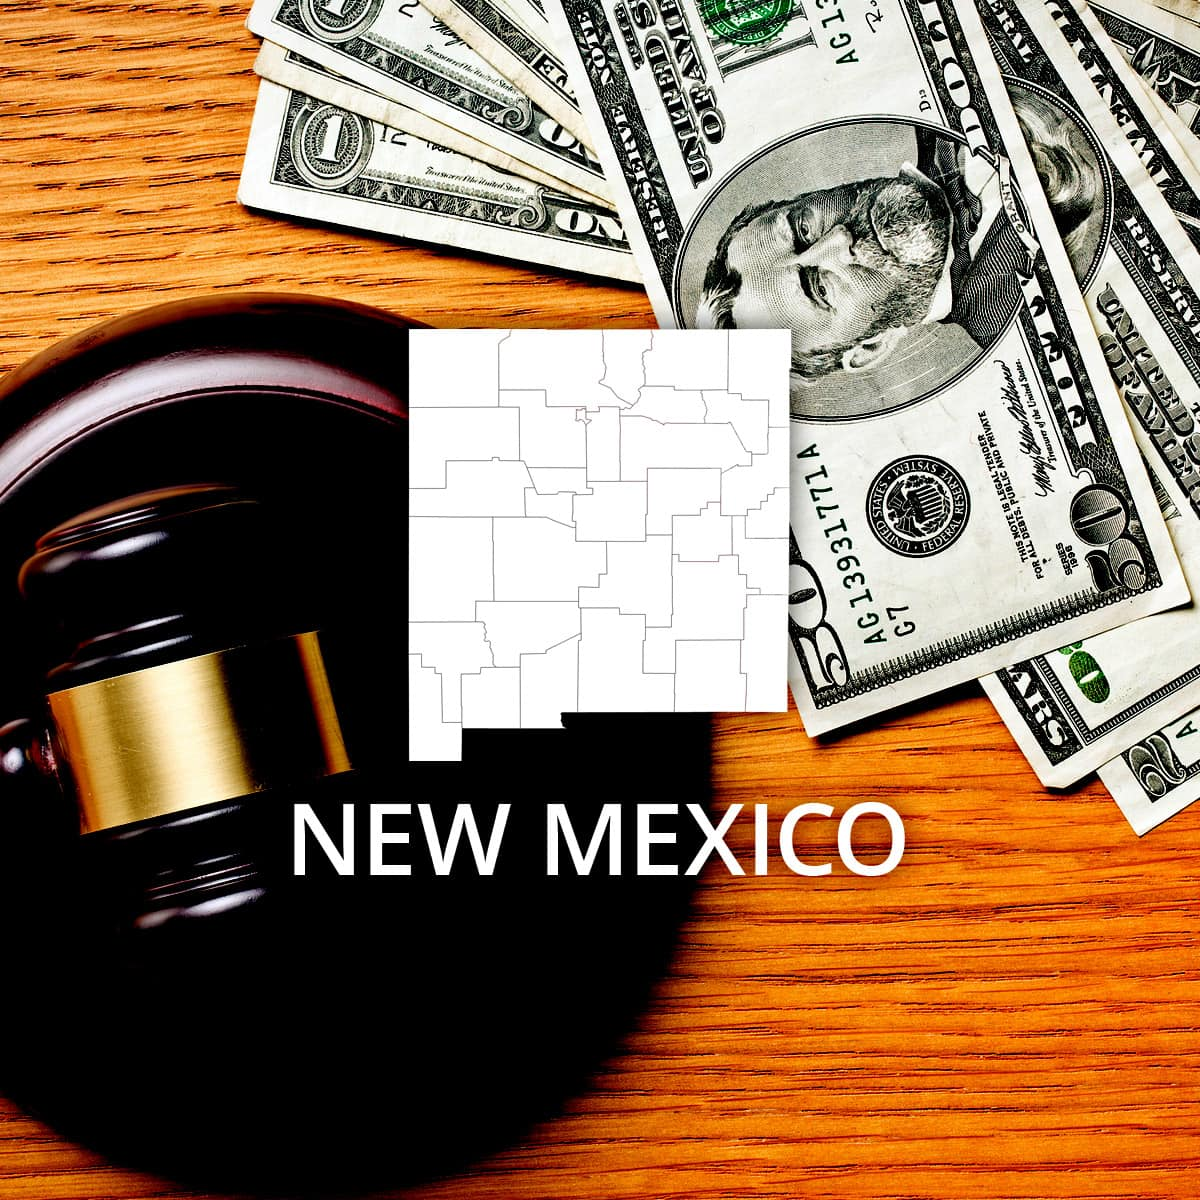 How to File Bankruptcy in New Mexico